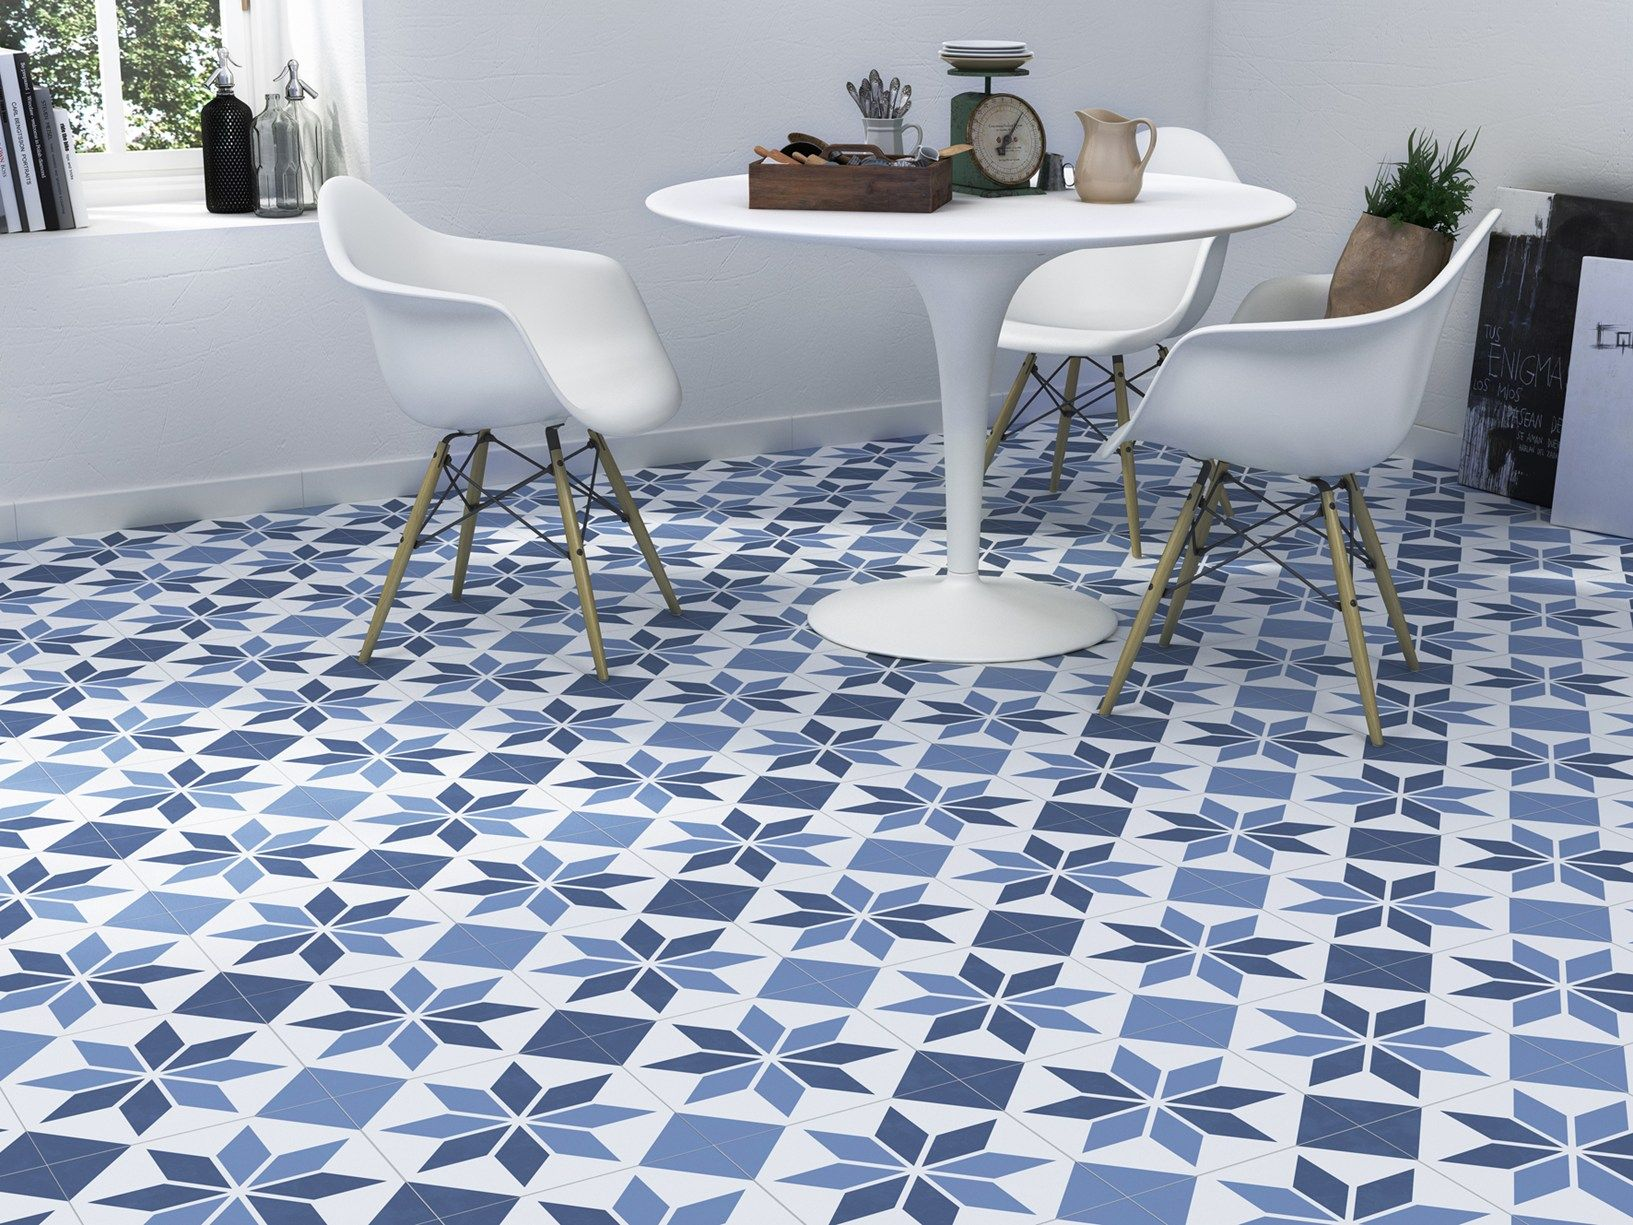 Moving sonar vanguard the new tiles collection by cer micas aparici - Lino imitatie cement tegels ...